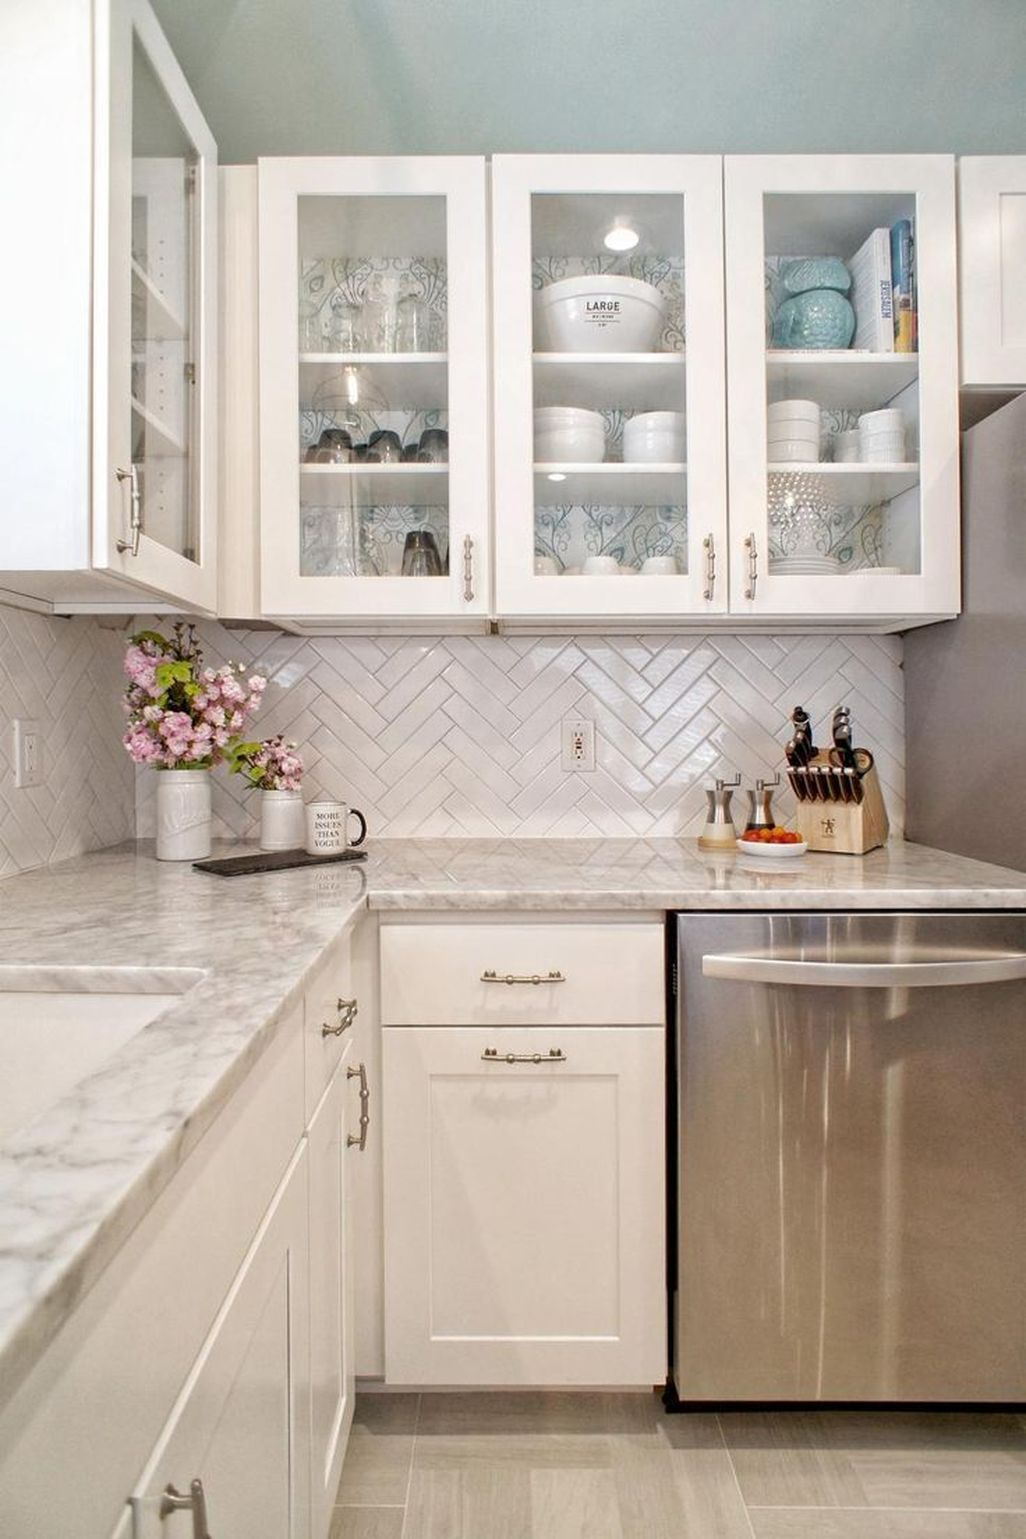 Pin by Holly M on kitchen Pinterest Kitchen Kitchen backsplash